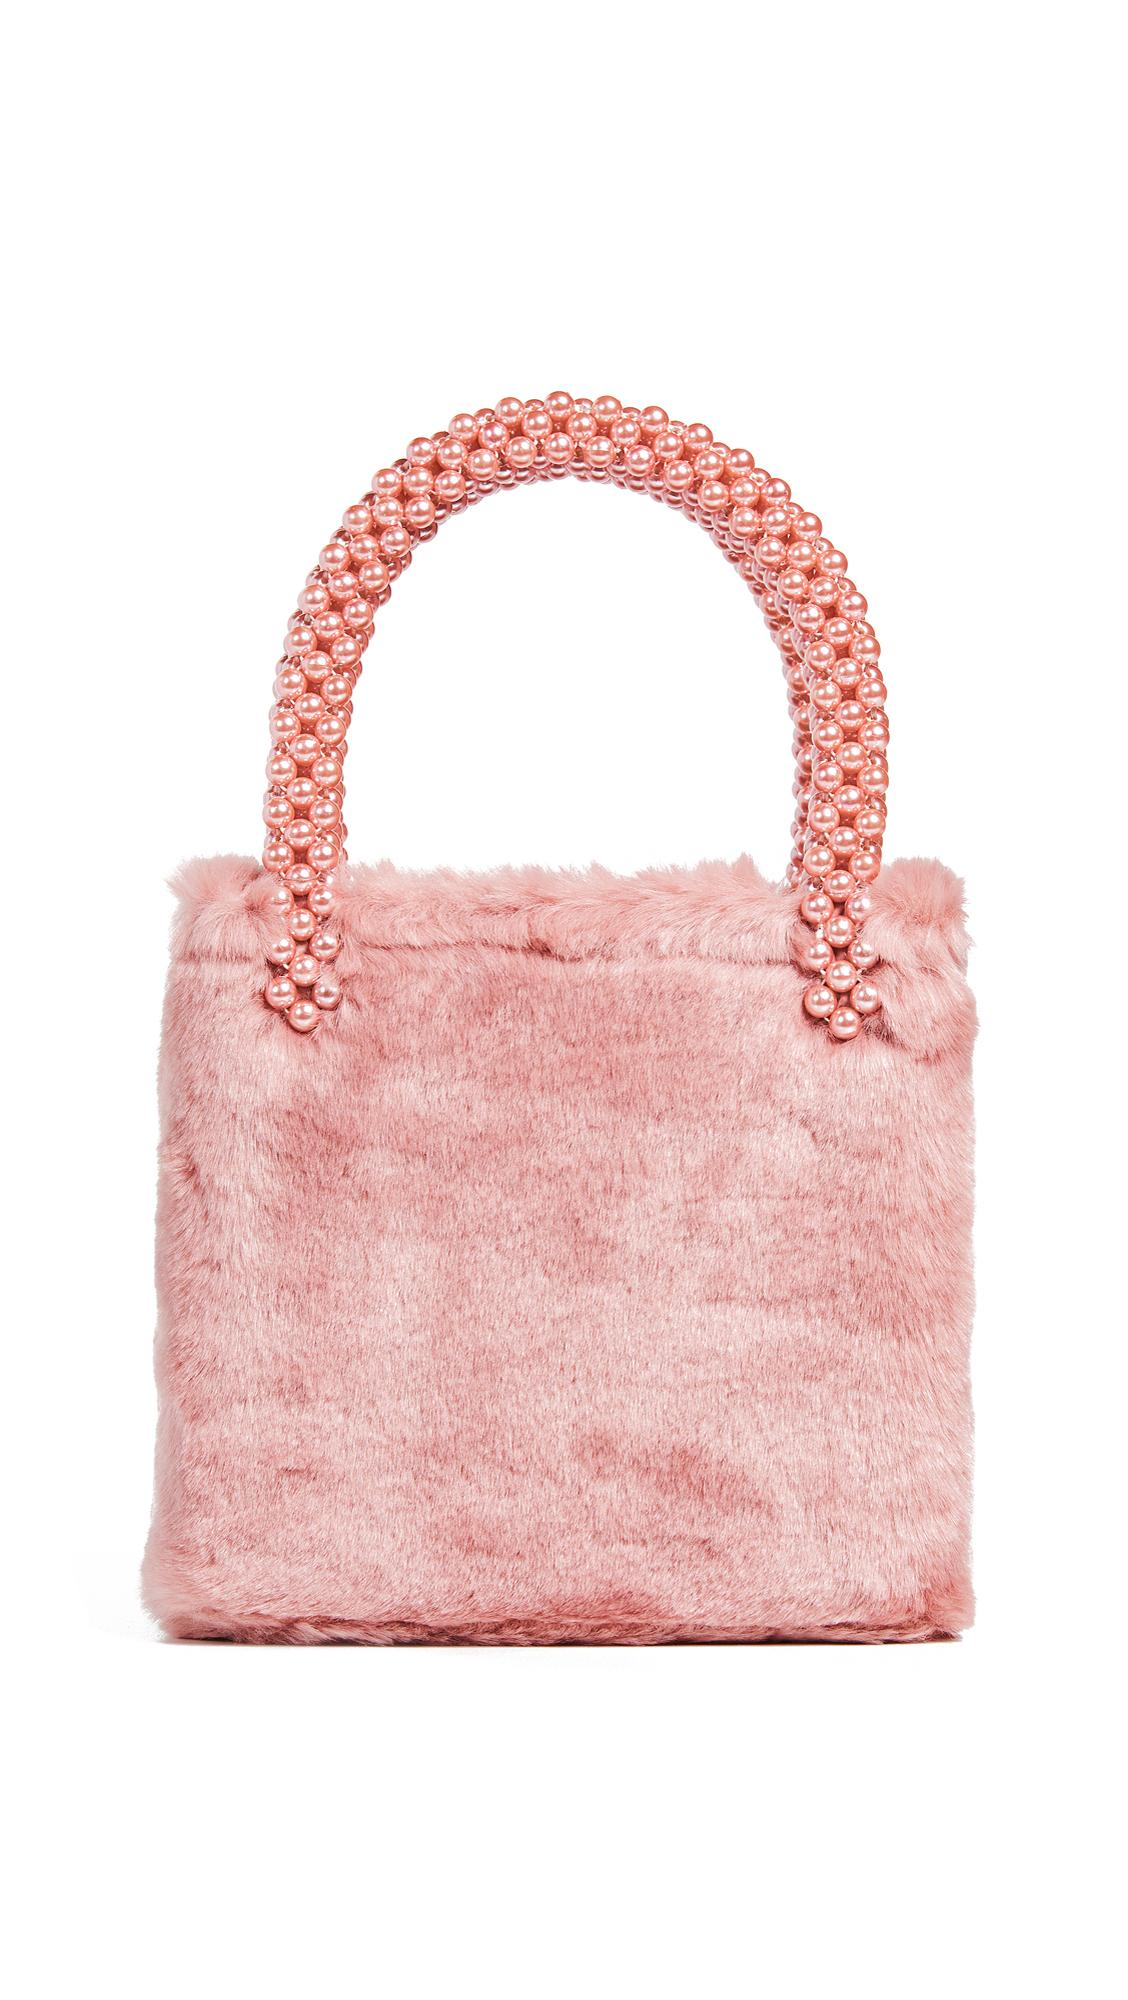 Shrimps Una Faux Fur And Pearl Bag In Pink  92d429ff8b4b0